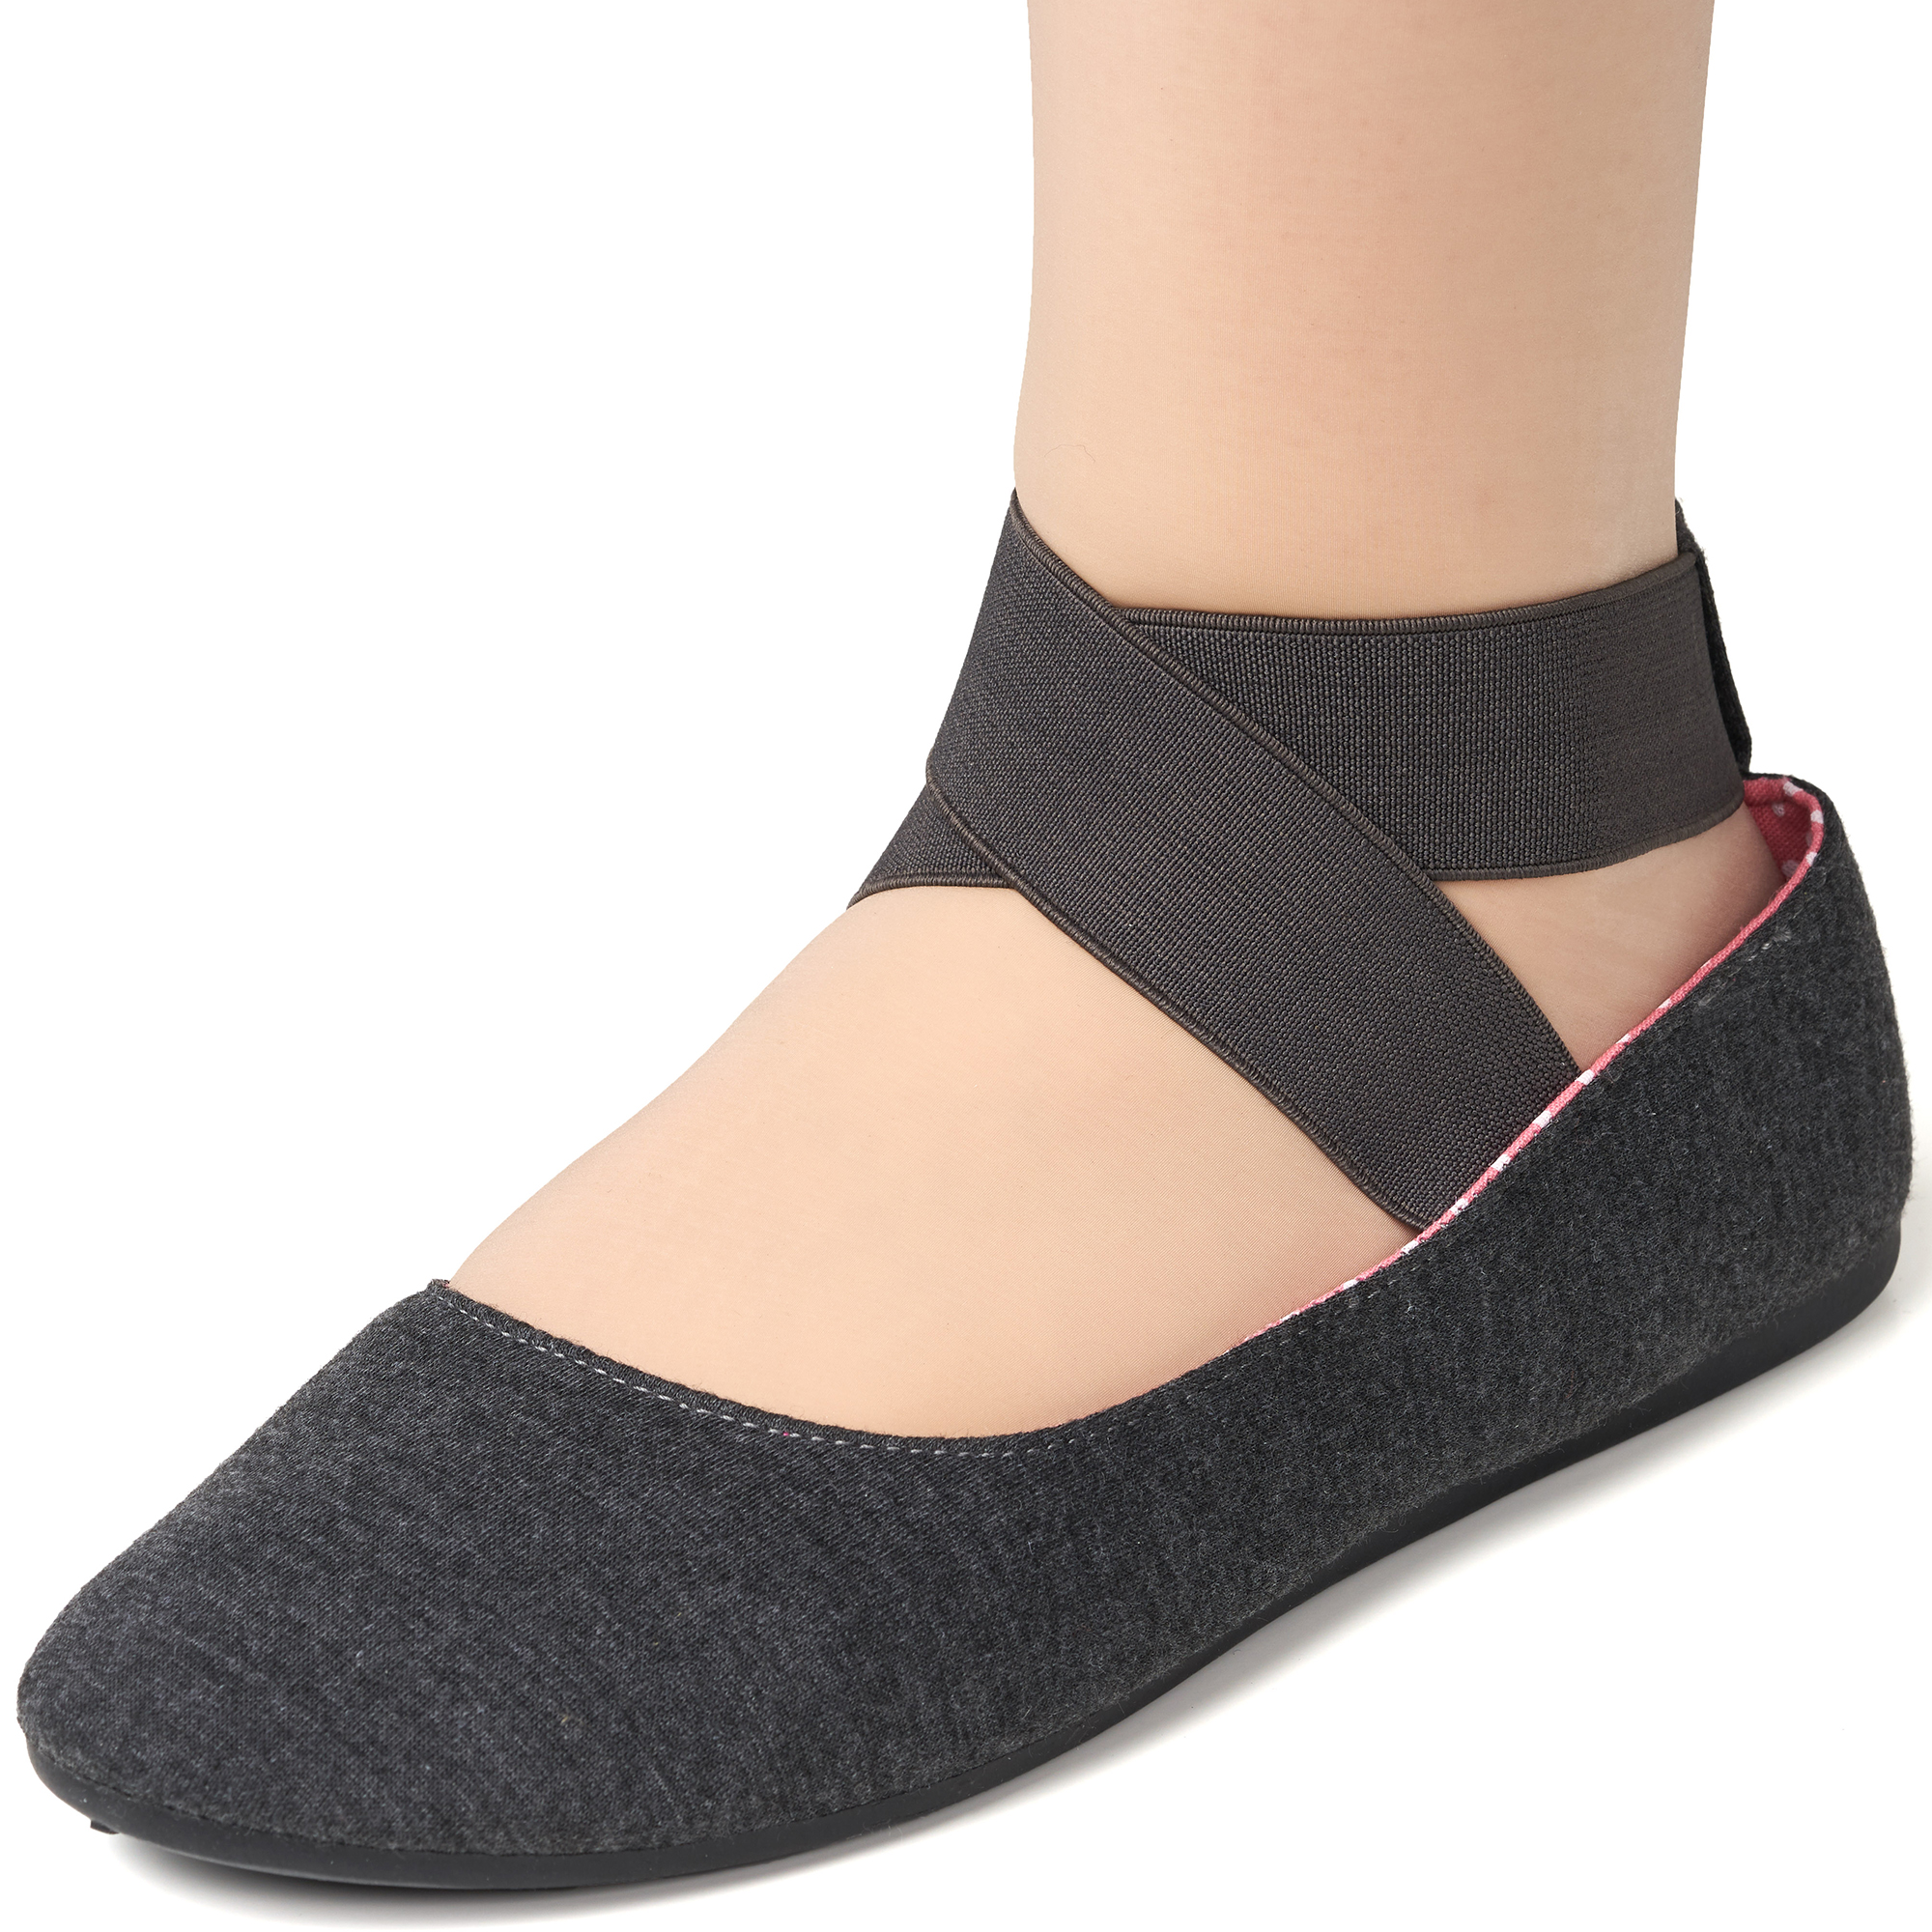 Alpine-Swiss-Peony-Womens-Ballet-Flats-Elastic-Ankle-Strap-Shoes-Slip-On-Loafers thumbnail 31